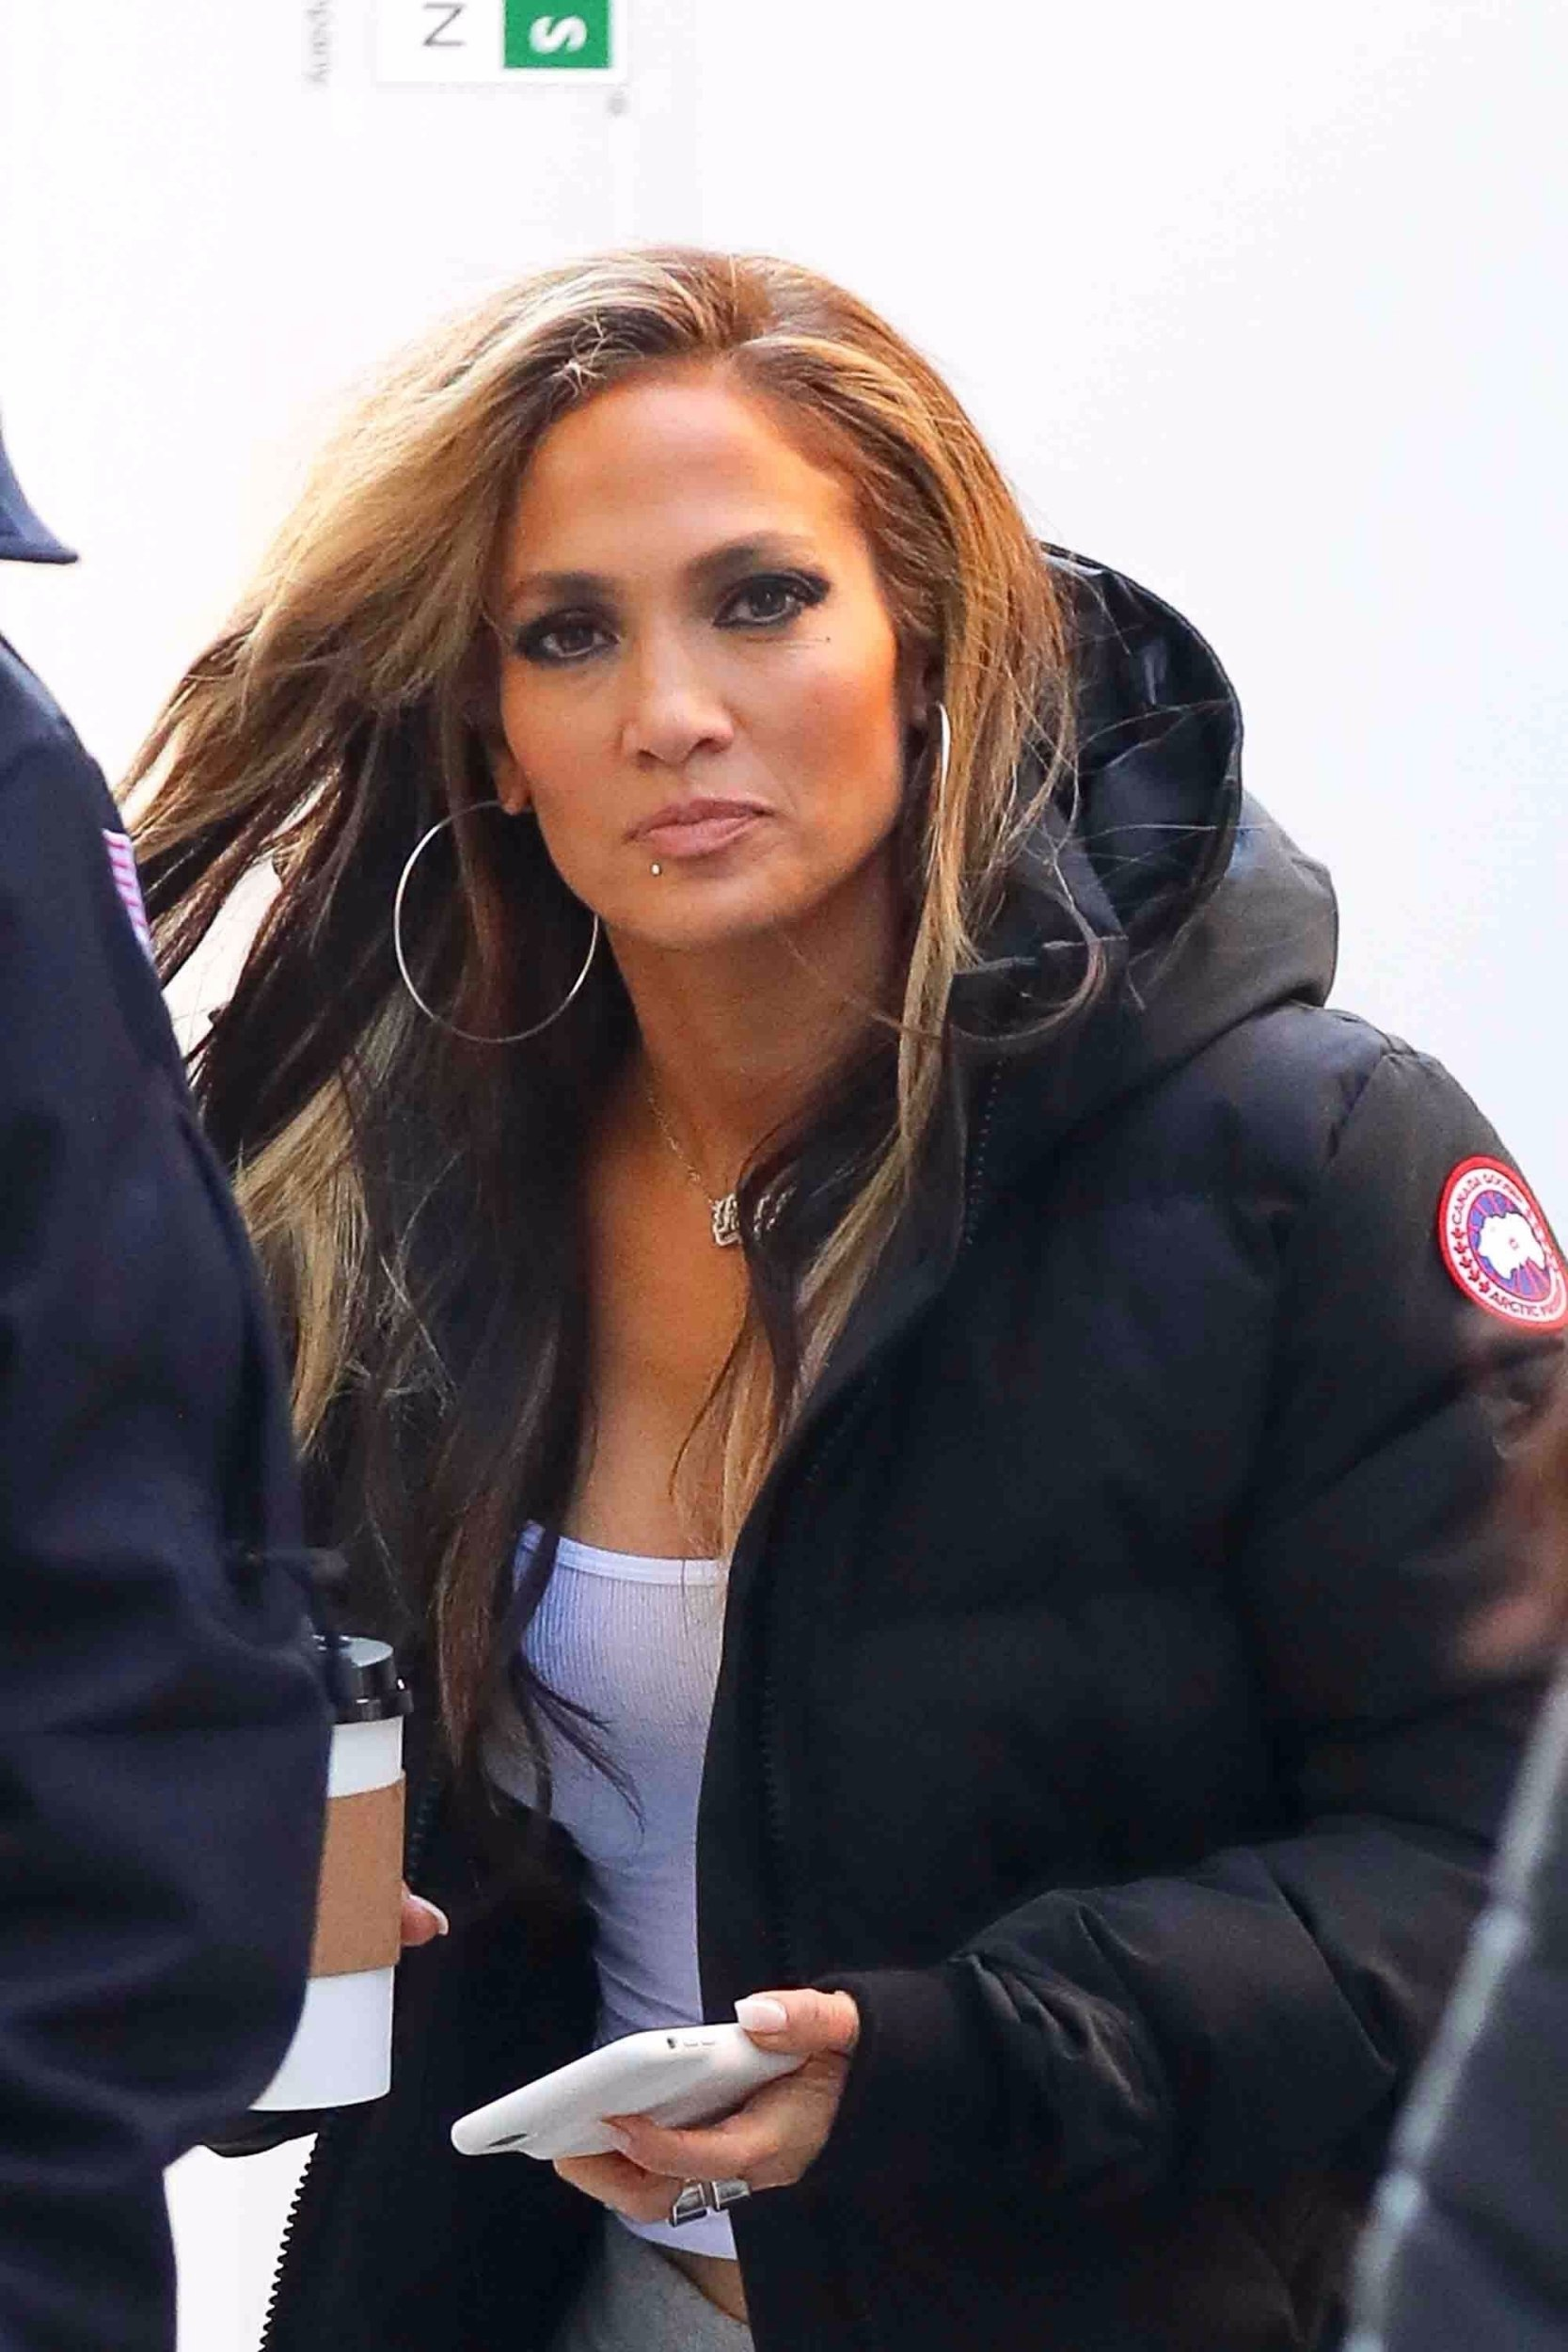 New York, NY - *EXCLUSIVE* - A smiling Jennifer Lopez arrives on the set of 'Hustlers' with a large coffee in NYC. Lopez showed off a peek of her killer abs in a crop top and grey sweats under a black puffer coat. Pictured: Jennifer Lopez BACKGRID USA 7 APRIL 2019 BYLINE MUST READ: Spartano / BACKGRID USA: +1 310 798 9111 / usasales@backgrid.com UK: +44 208 344 2007 / uksales@backgrid.com *UK Clients - Pictures Containing Children Please Pixelate Face Prior To Publication*